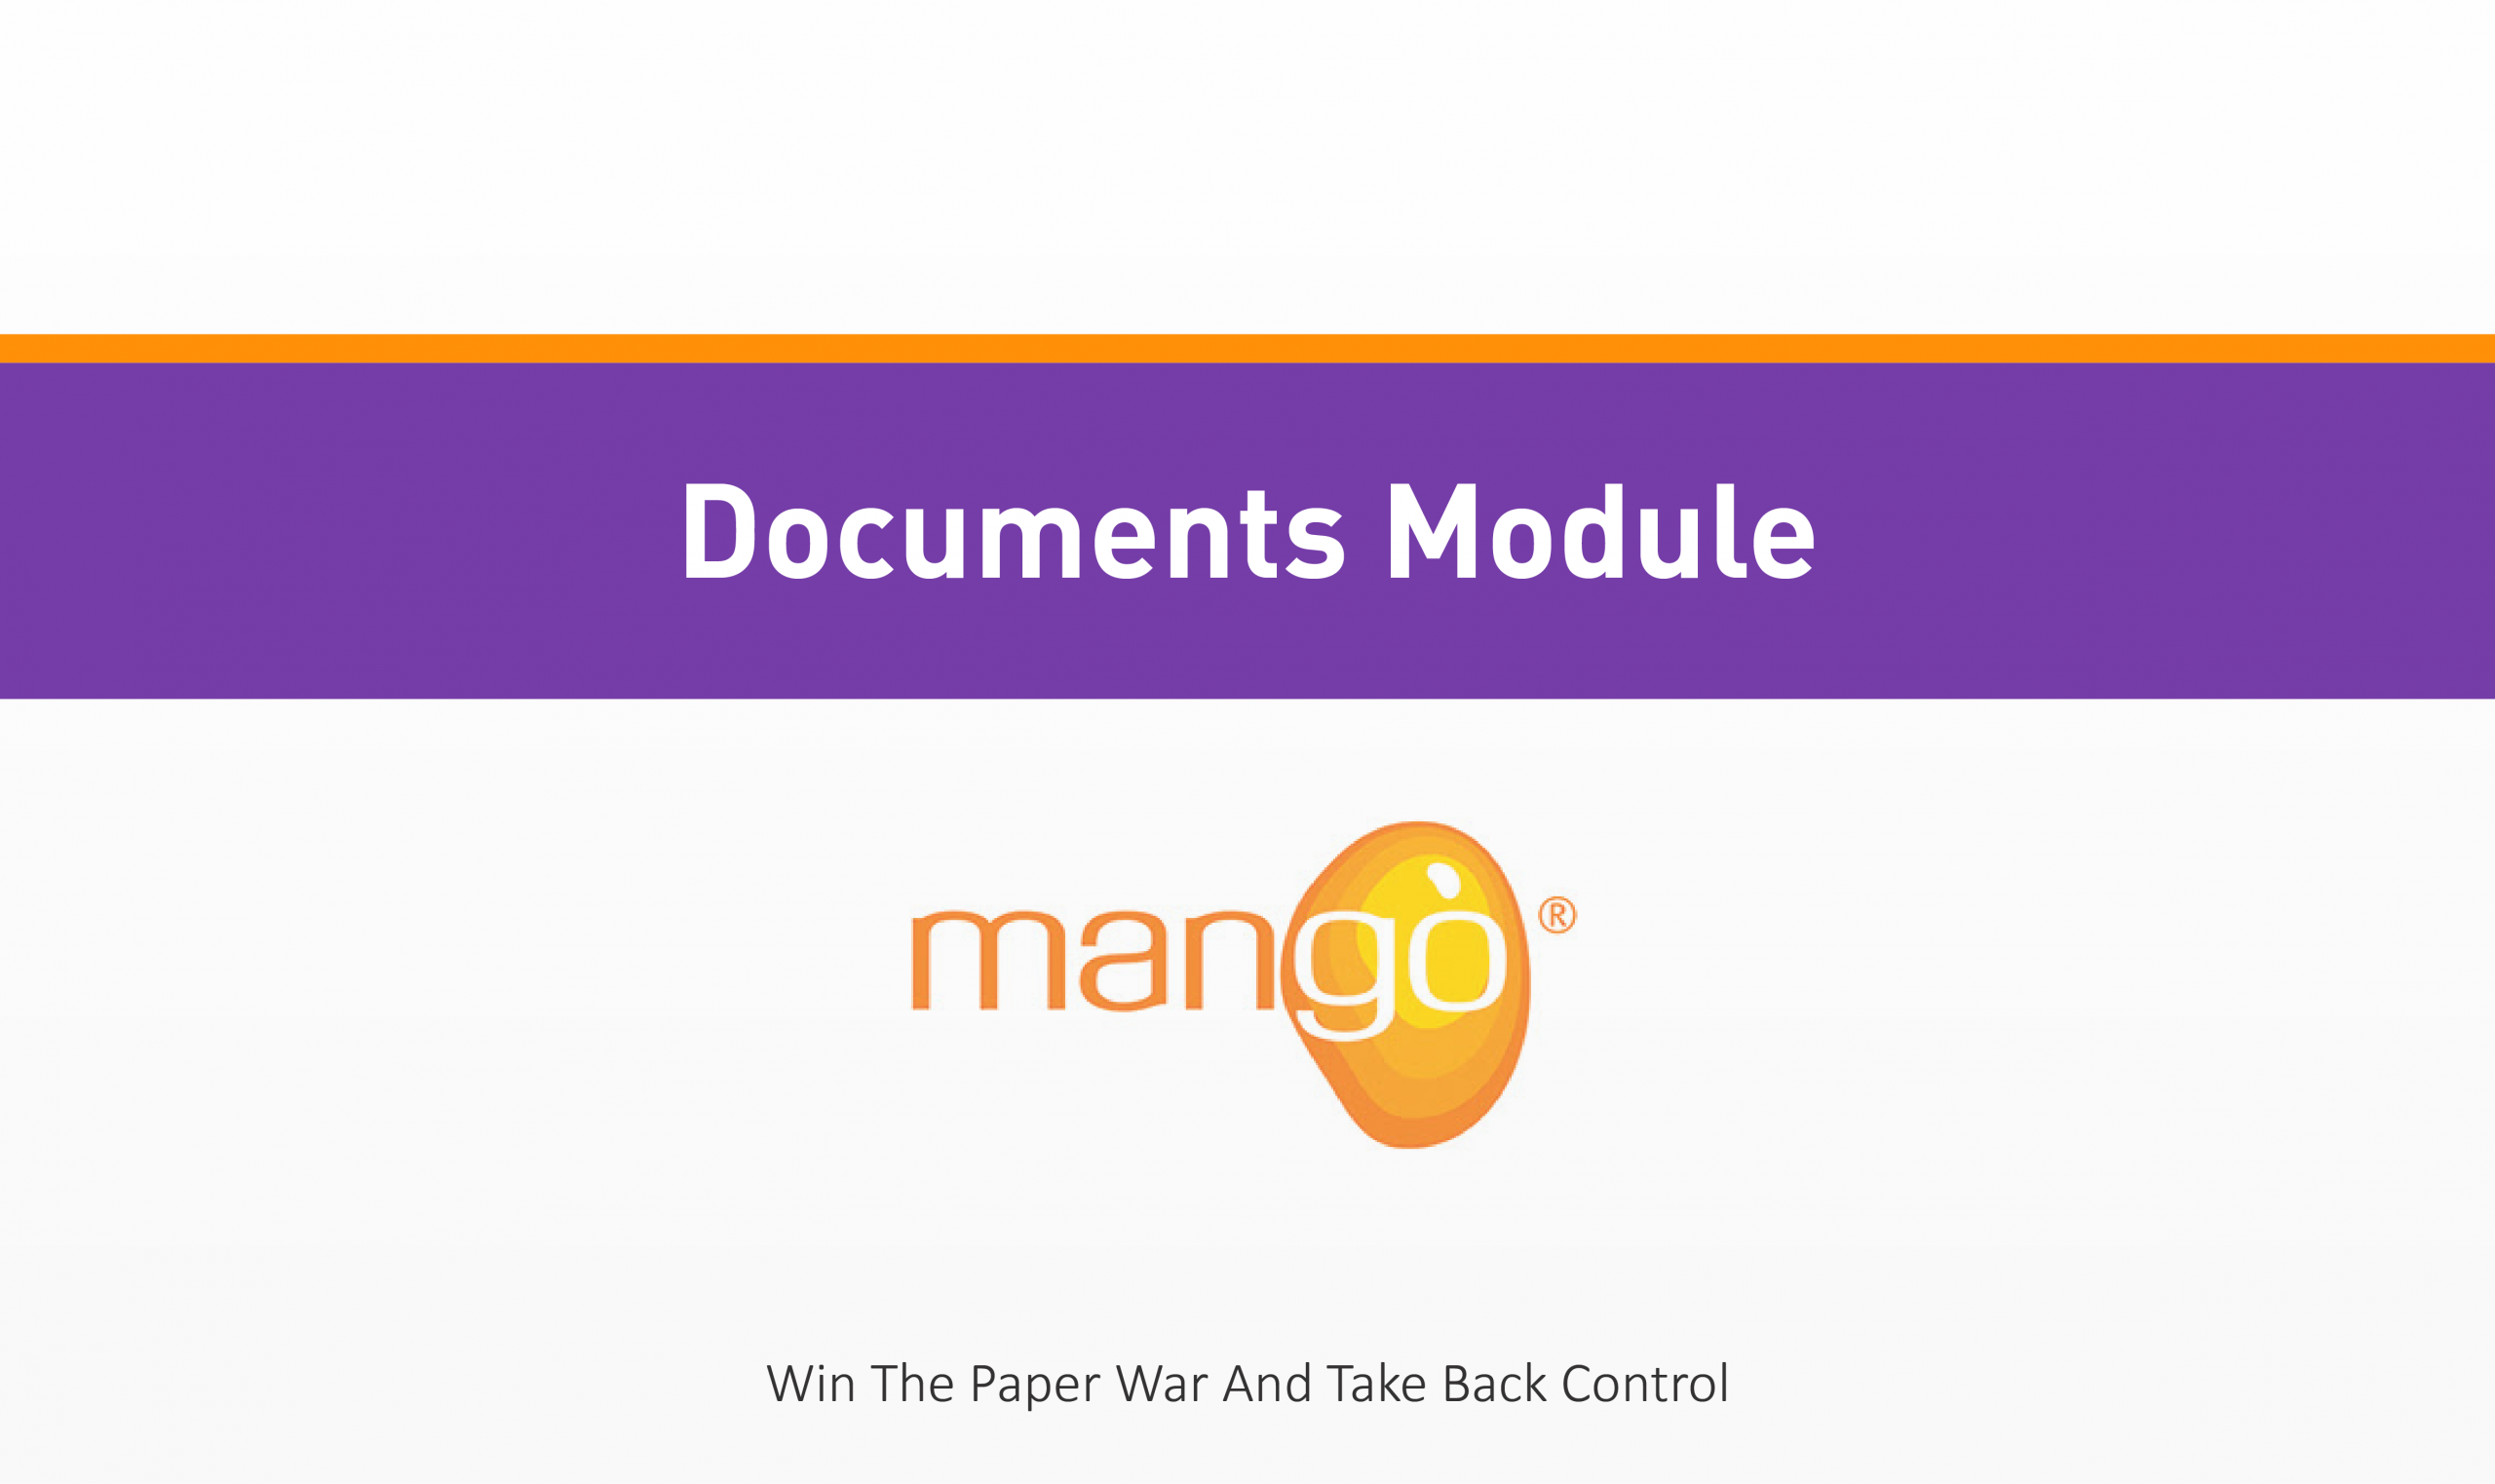 Documents Module Training Video Quality Health Safety Environment Management Compliance Services Australia QHSE Consulting And Auditing Mango Compliance Software Solutions